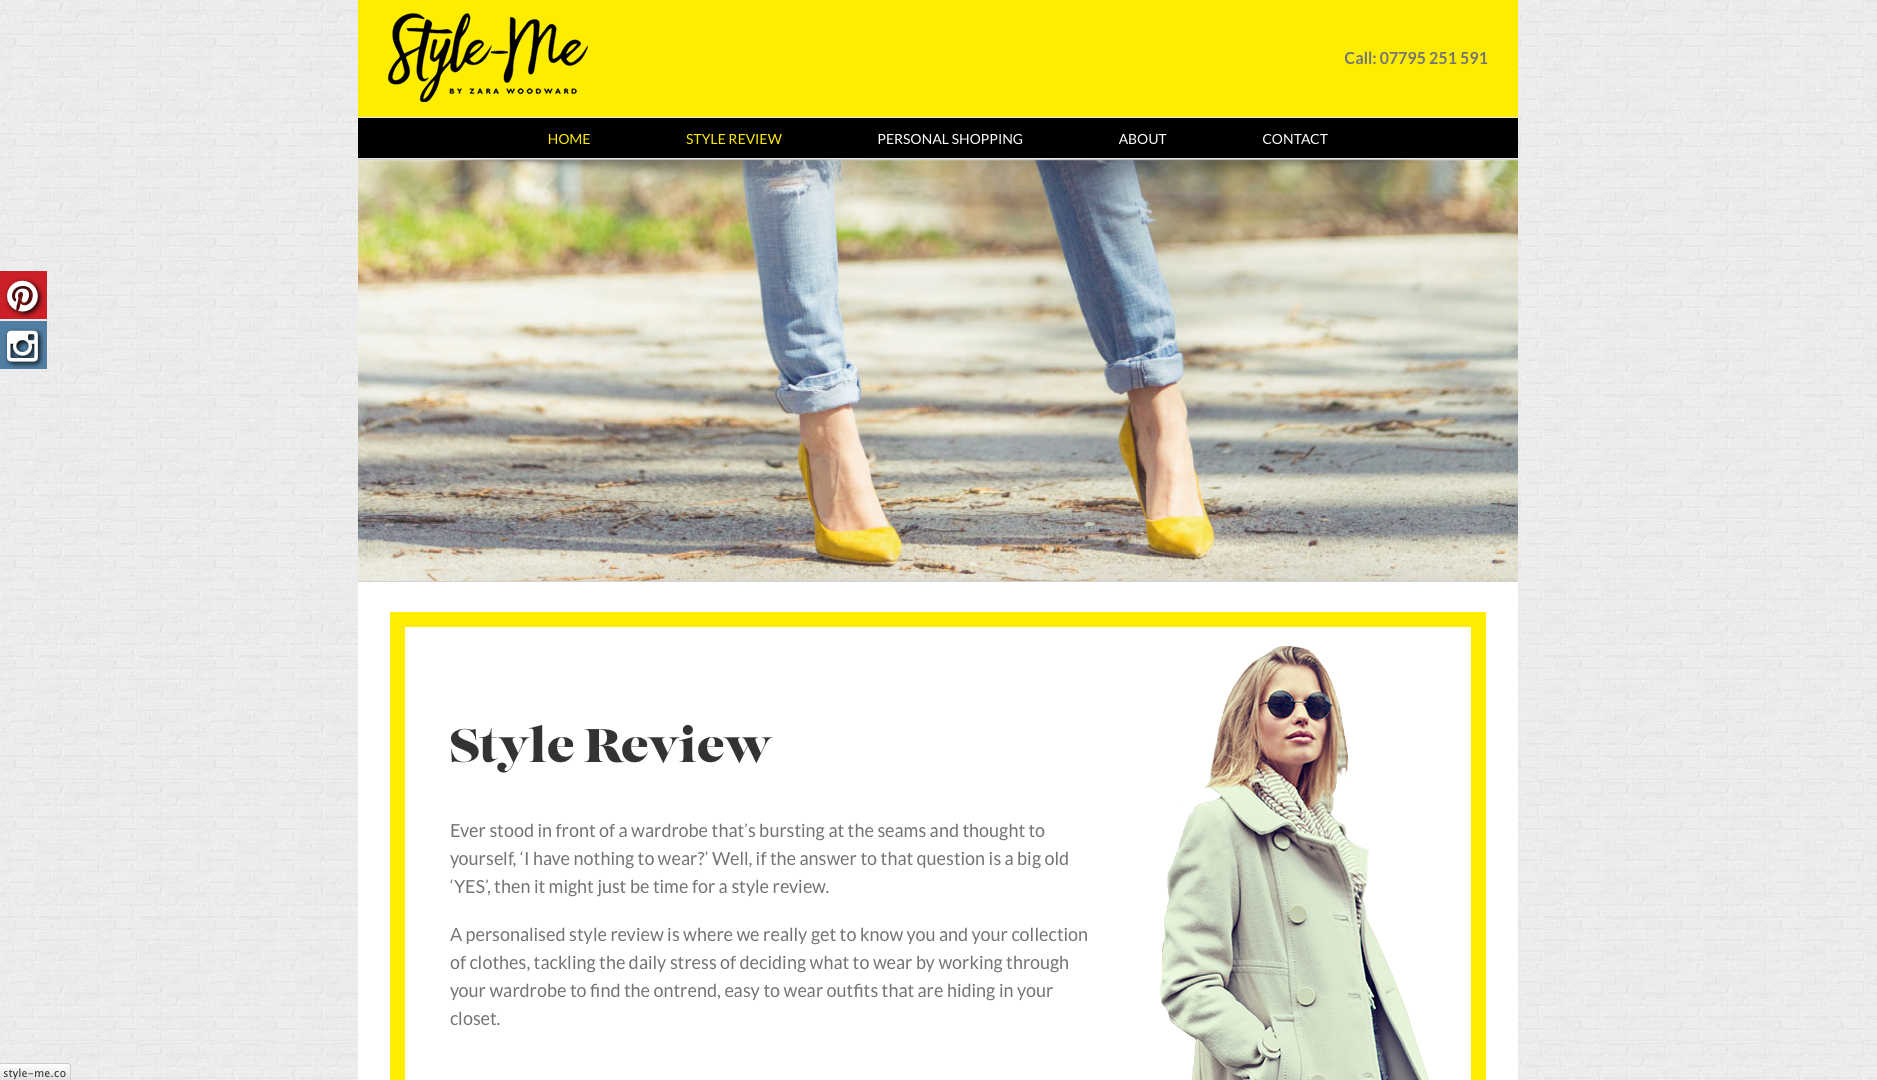 Style-me style review page website design and build by collective creative